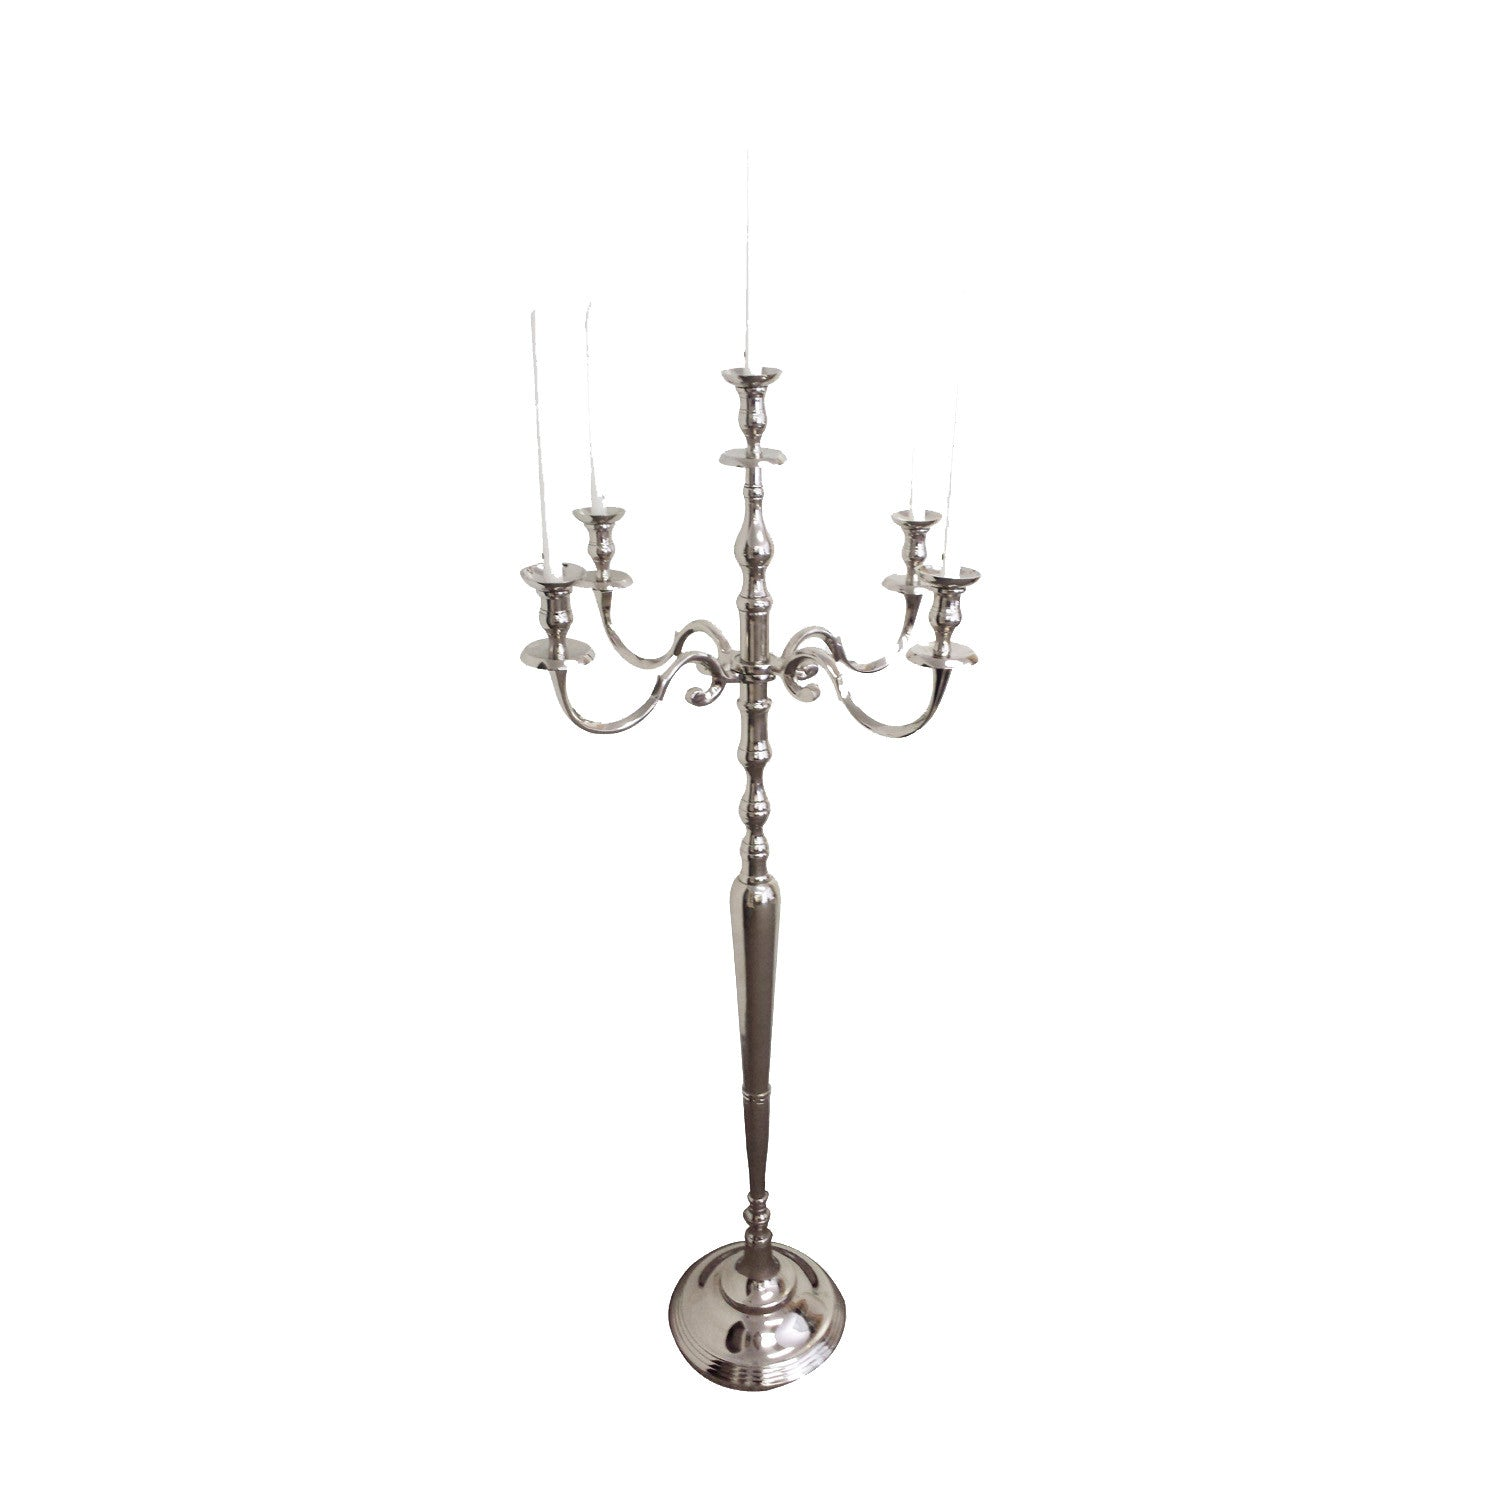 ... Silver GiftBay 4016 Wedding Candelabra with 5 Candlestick Holders and 1  Flower Pot Plate Holder, ...